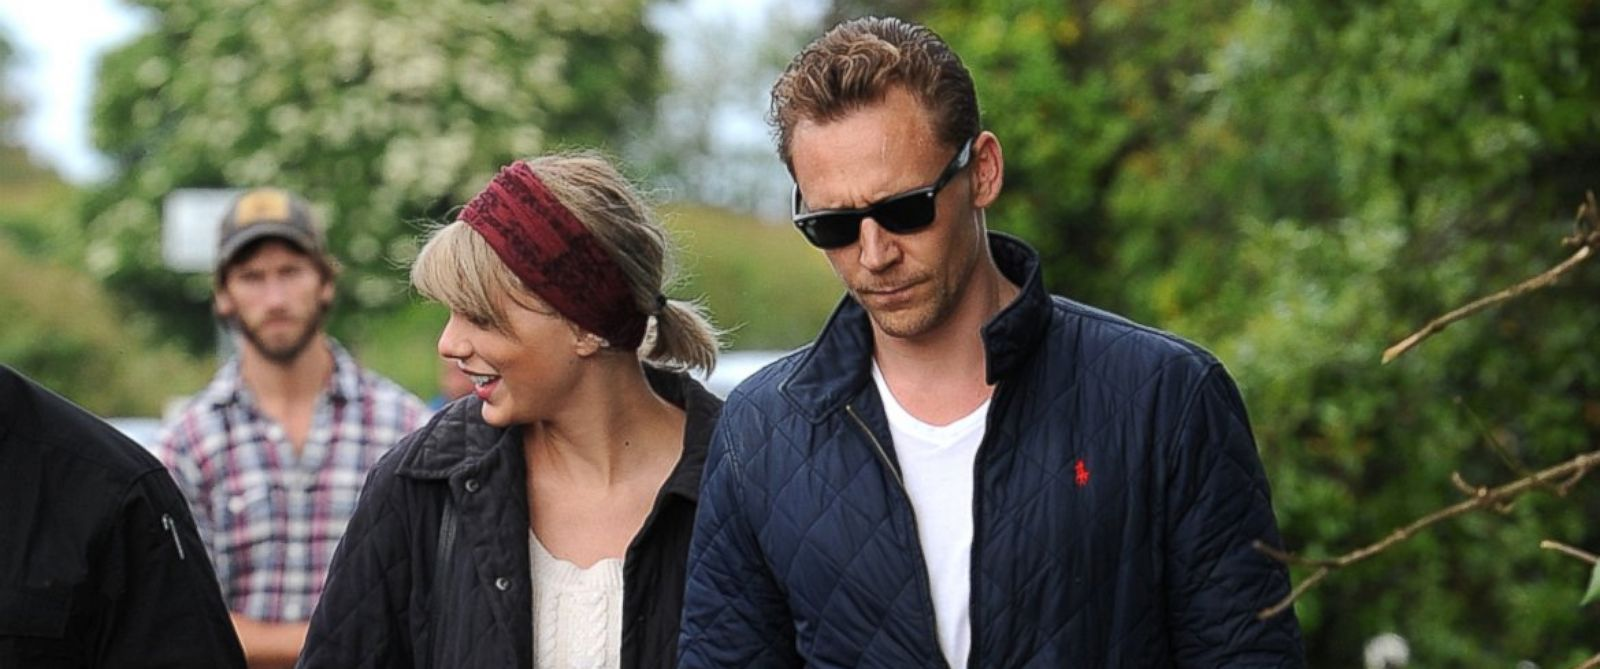 tom dating taylor swift During the after show, actor sebastian stan is asked what he thought of co-star tom hiddleston's romance with popstar taylor swift and sebastian says he had his concerns at the time.